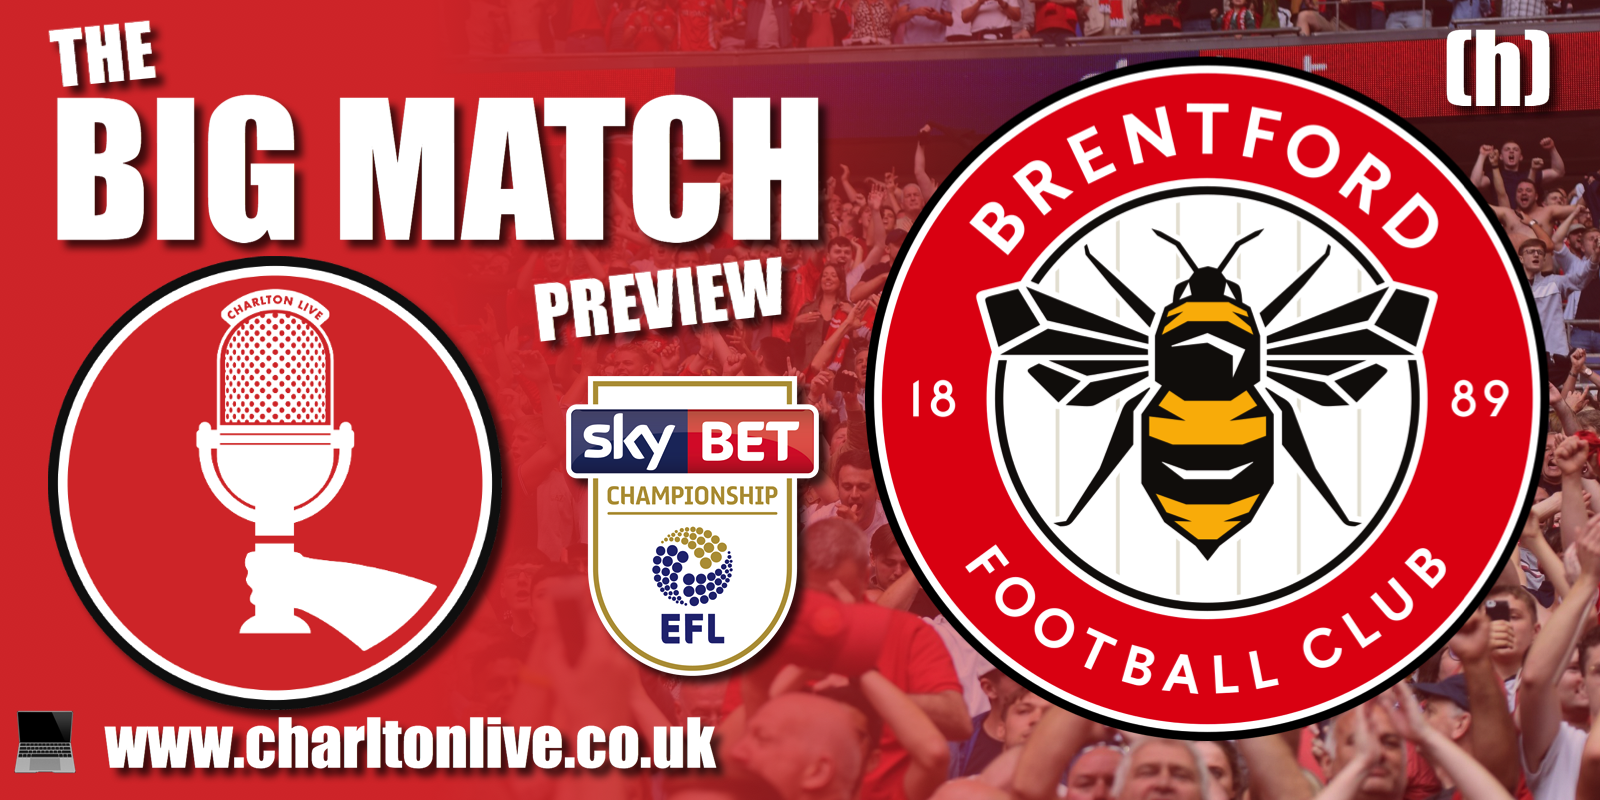 Join Louis Mendez and Tom Wallin as they look back at the draw against Nottingham Forest and ahead to Saturday's game with Brentford. They hear […]